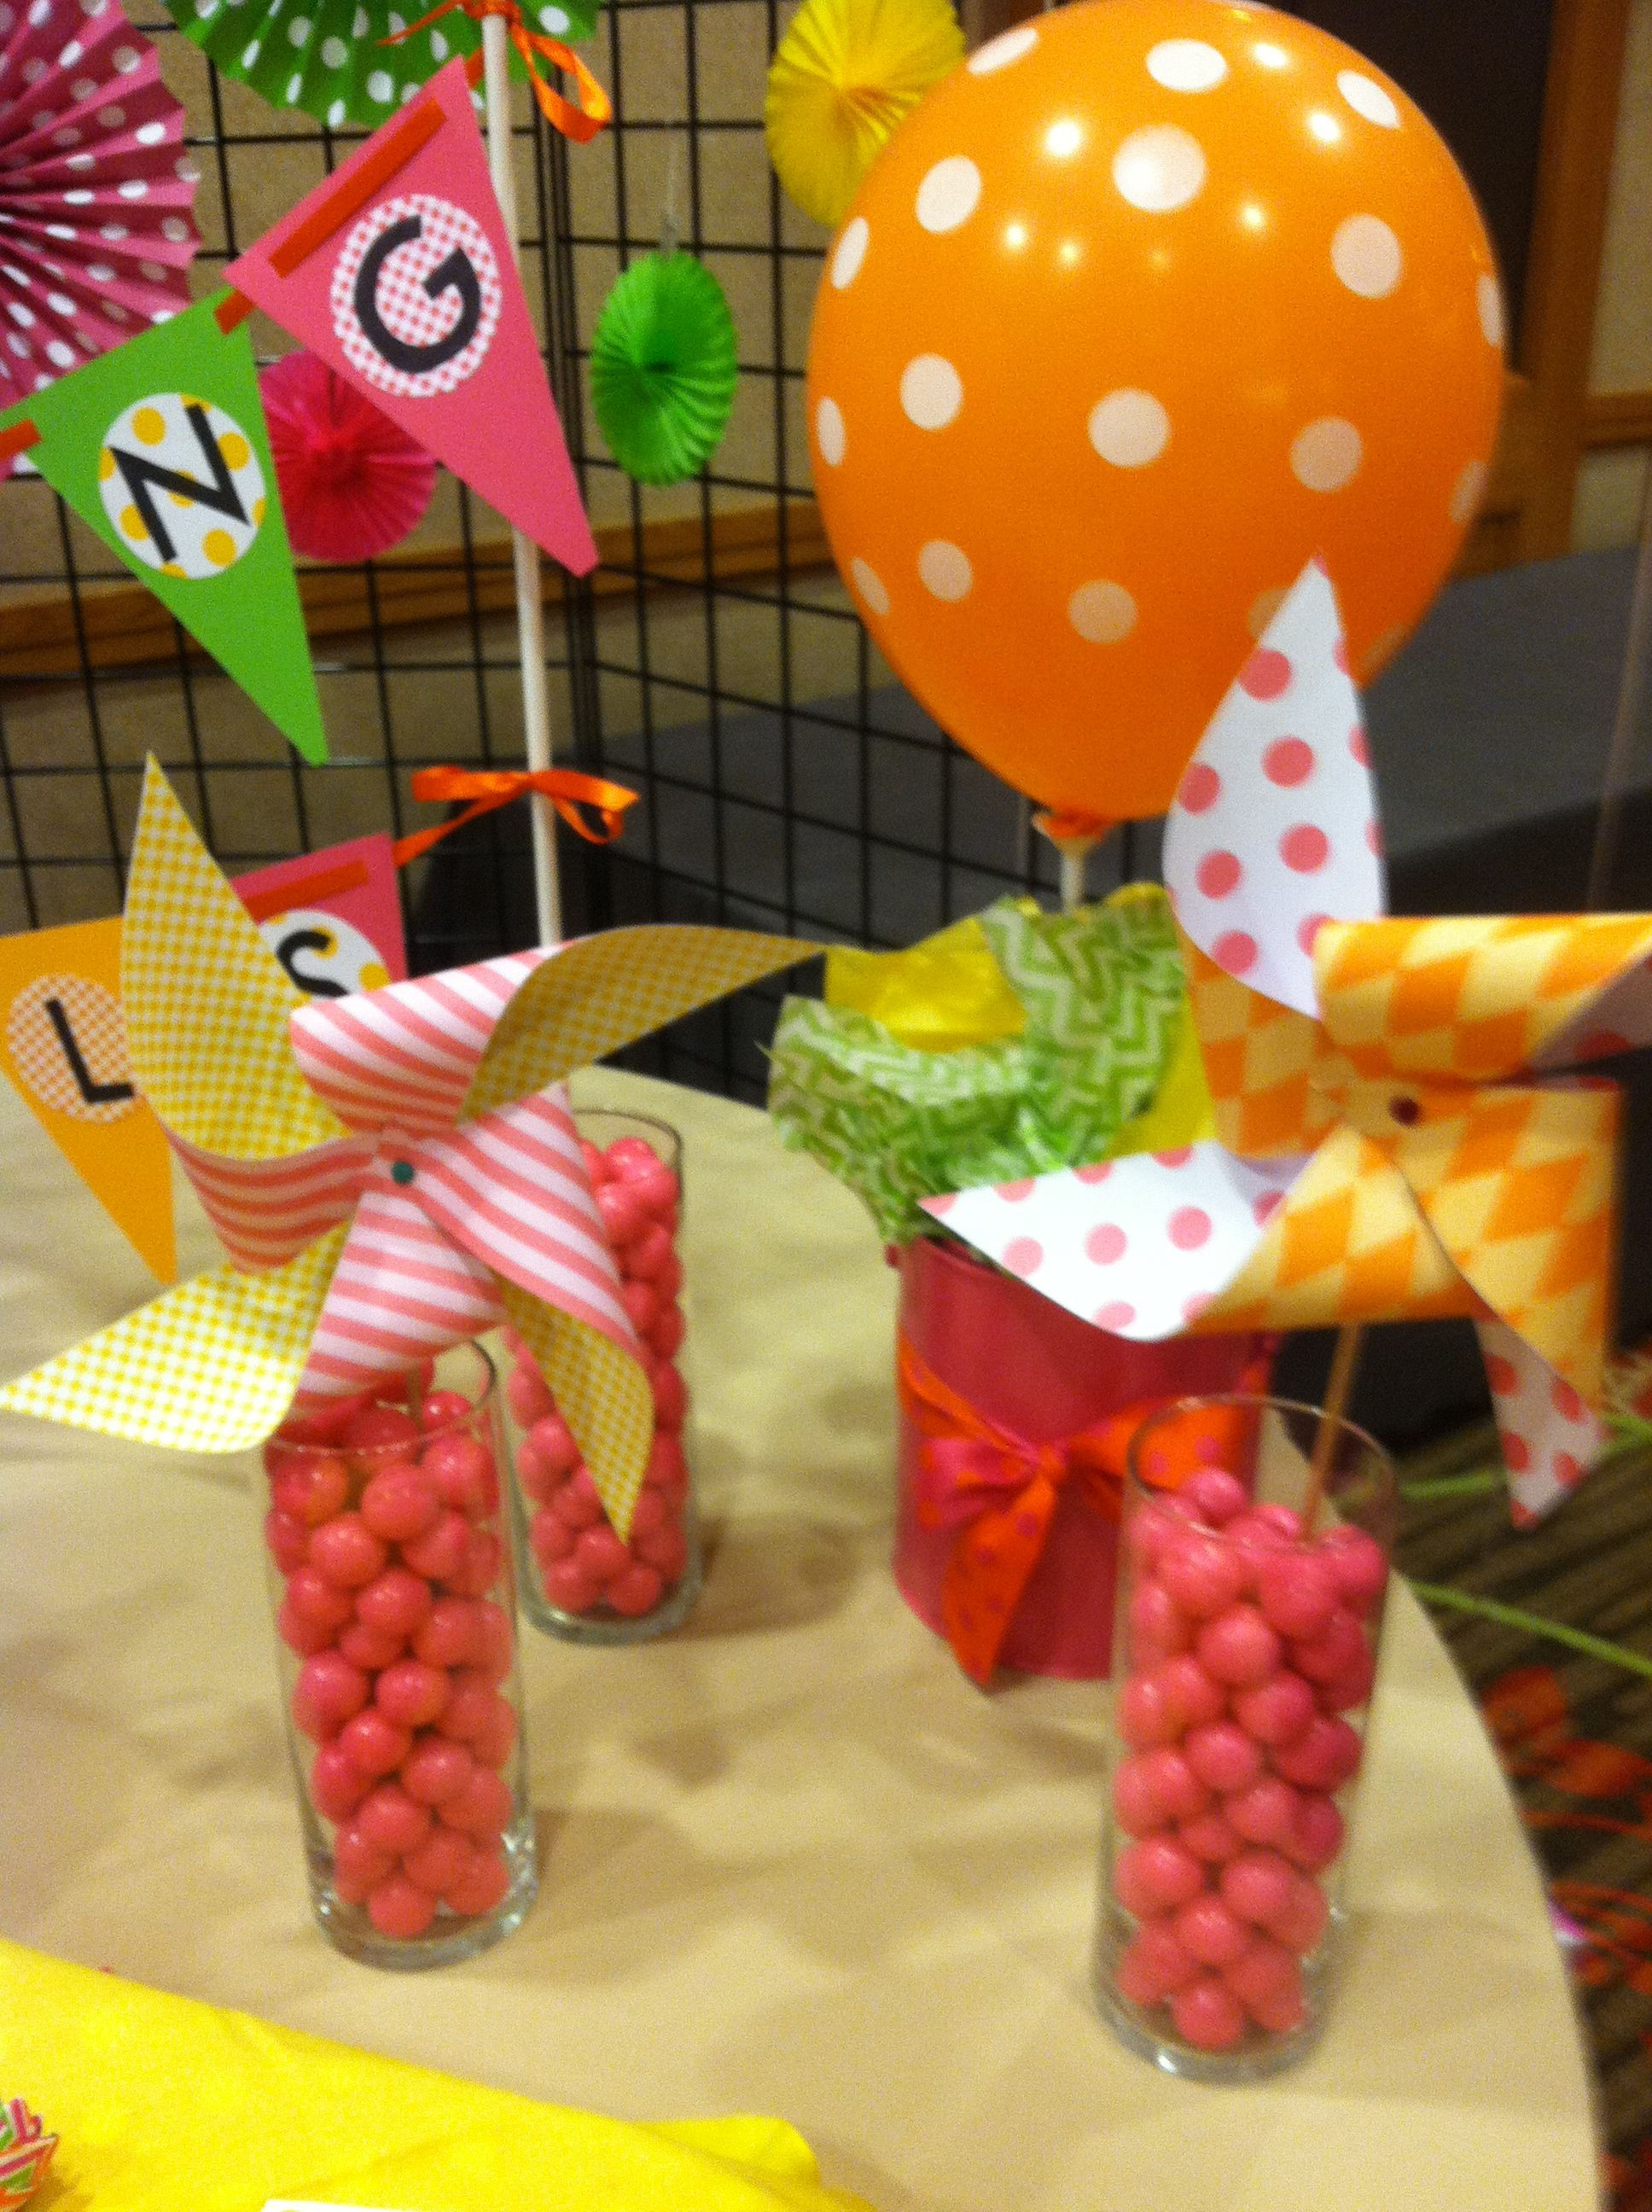 Fun pinwheels and bubble gum filled vases